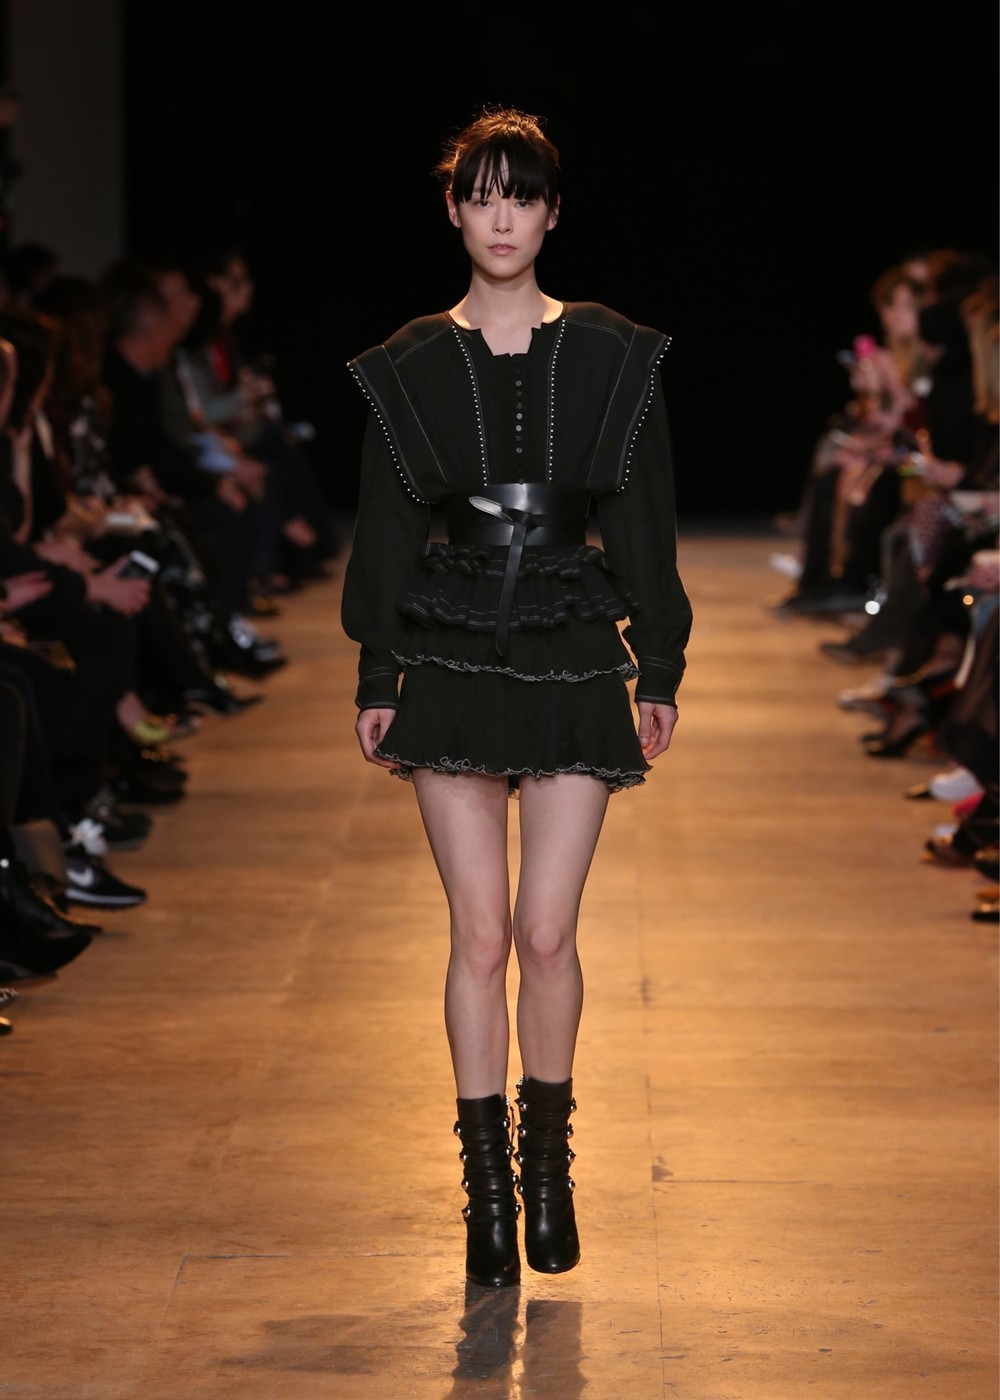 collection_fiche_origin_isabel_marant_fw15_look16_008e6.jpg